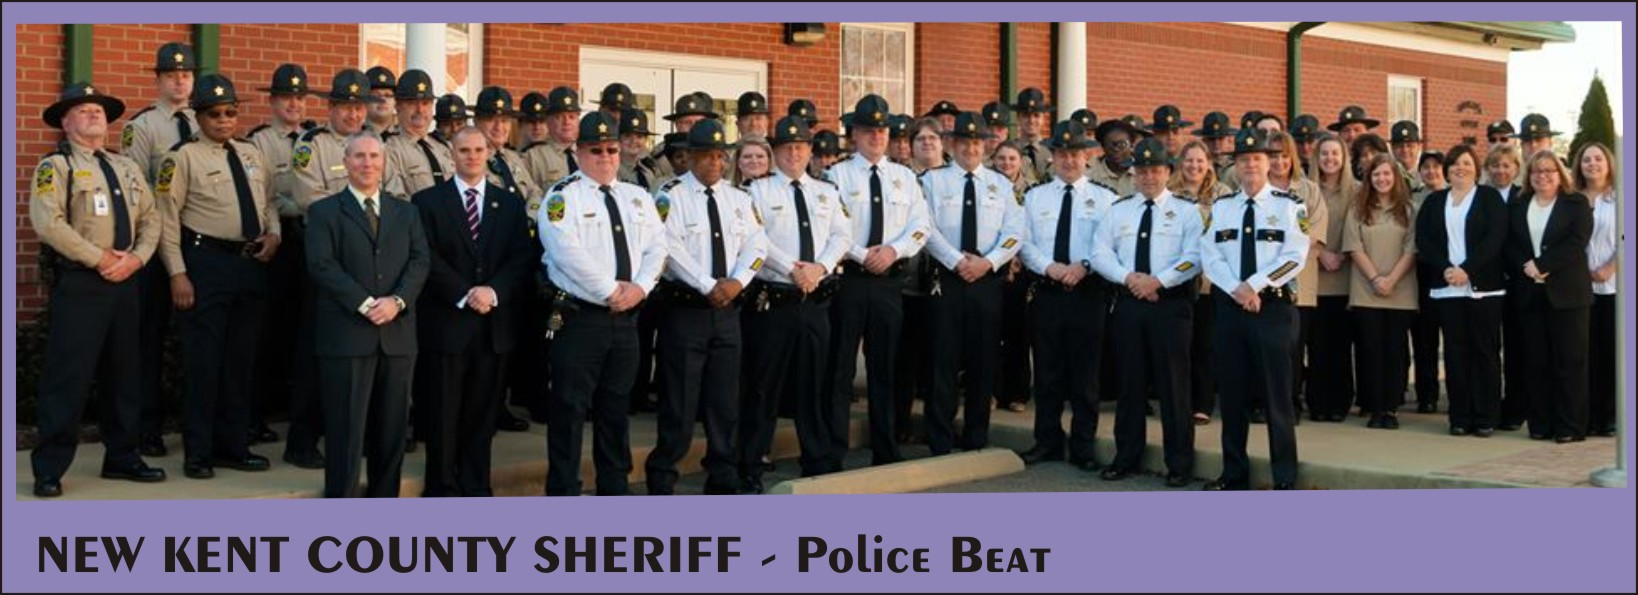 New Kent County Sheriff Police Beat